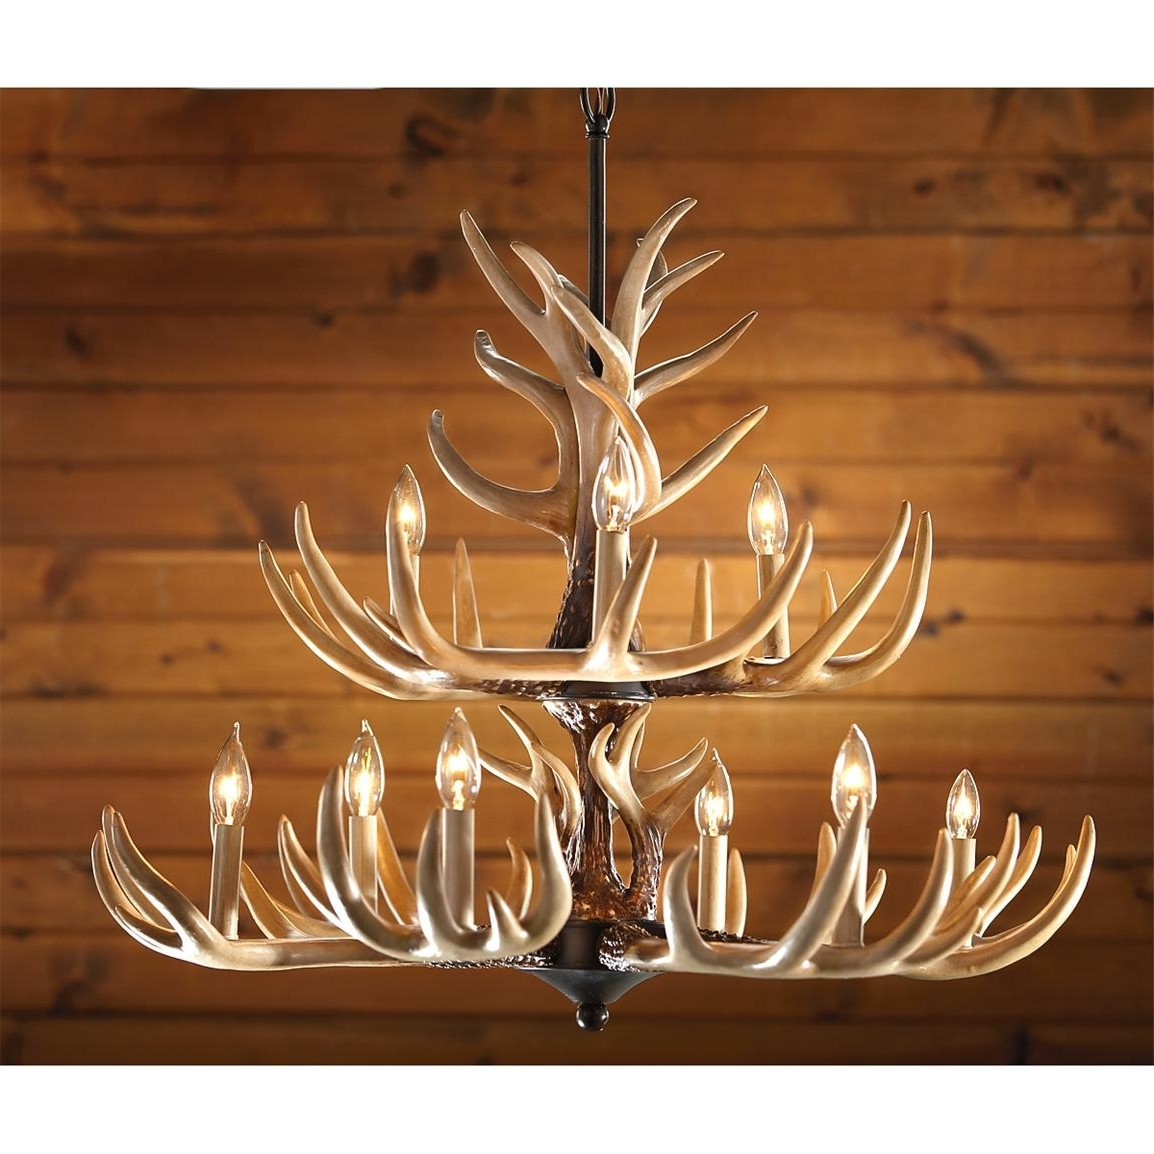 Well Liked Castlecreek 9 Light Whitetail Antler Chandelier – 226093, Lighting In Antler Chandeliers (View 5 of 20)